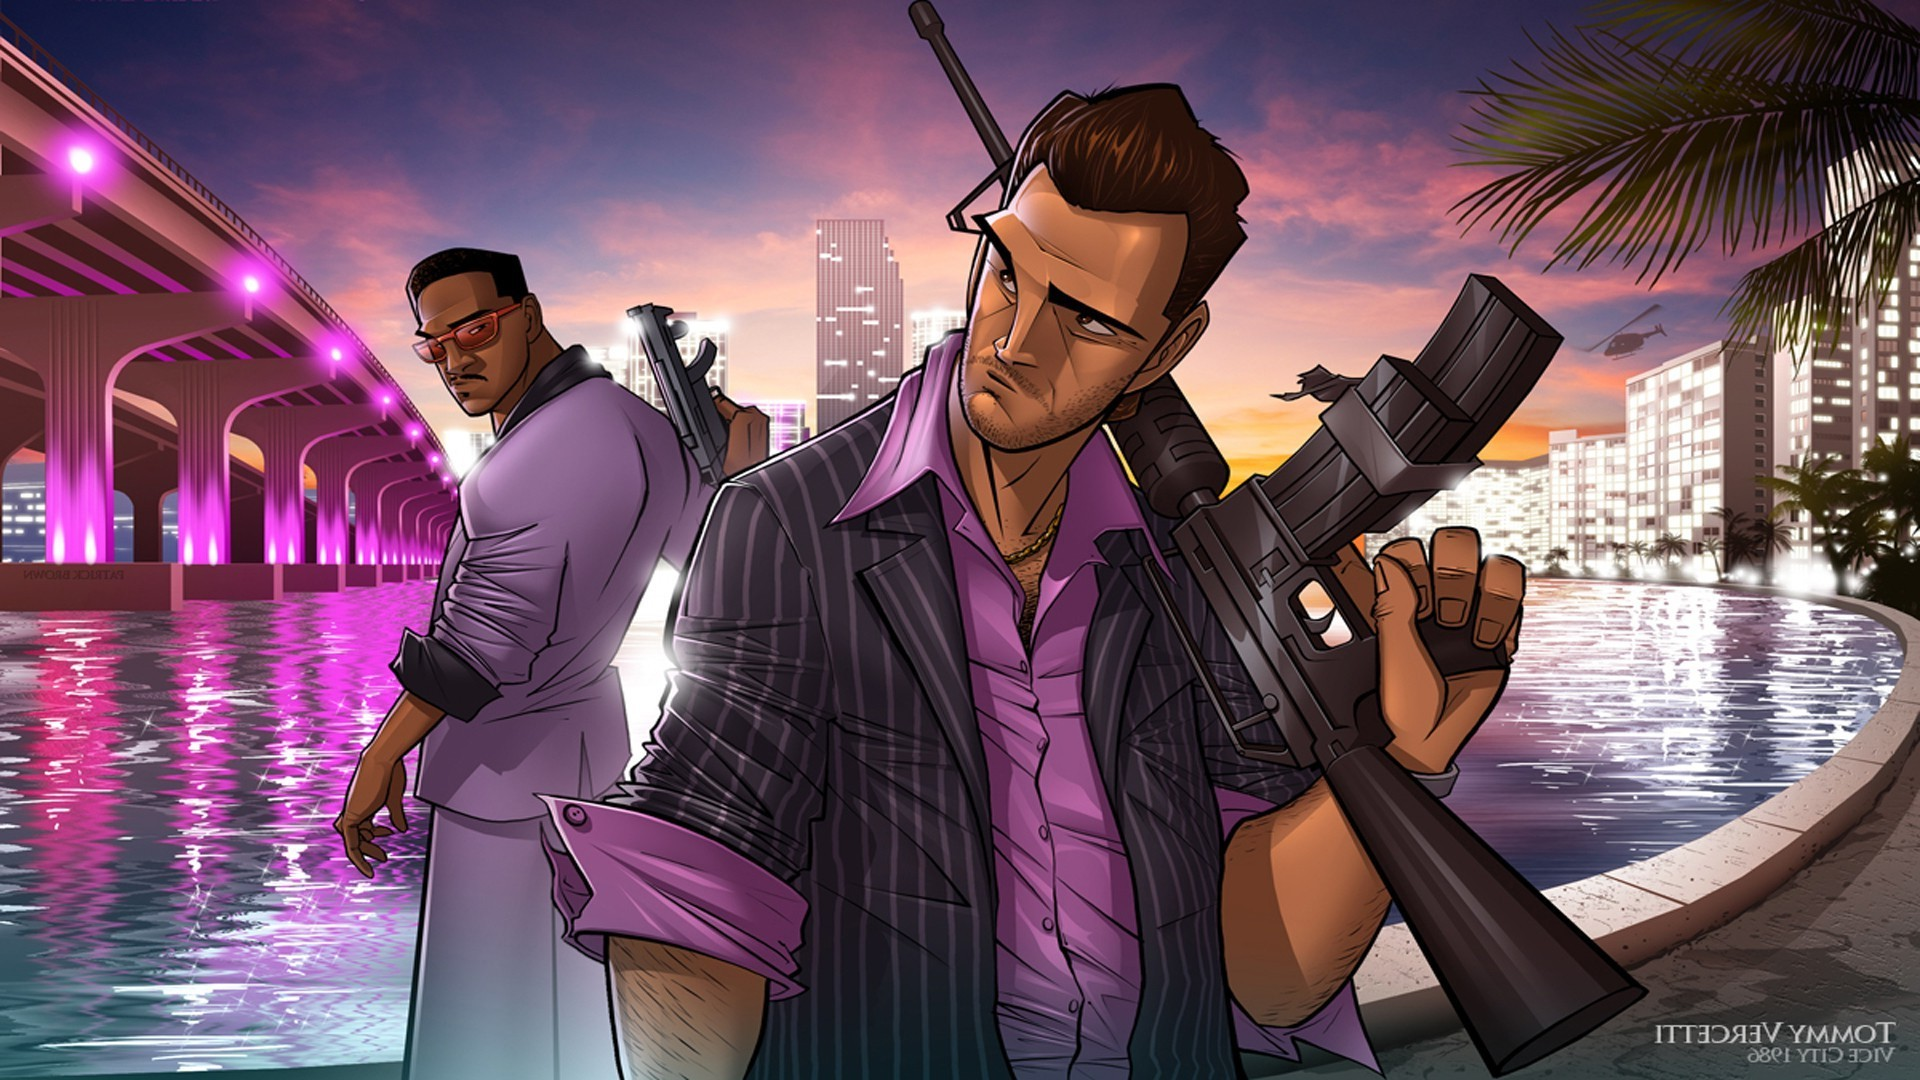 1920x1080 Grand Theft Auto Vice City, PC Gaming, Tommy Vercetti, Lance Vance  Wallpapers HD / Desktop and Mobile Backgrounds